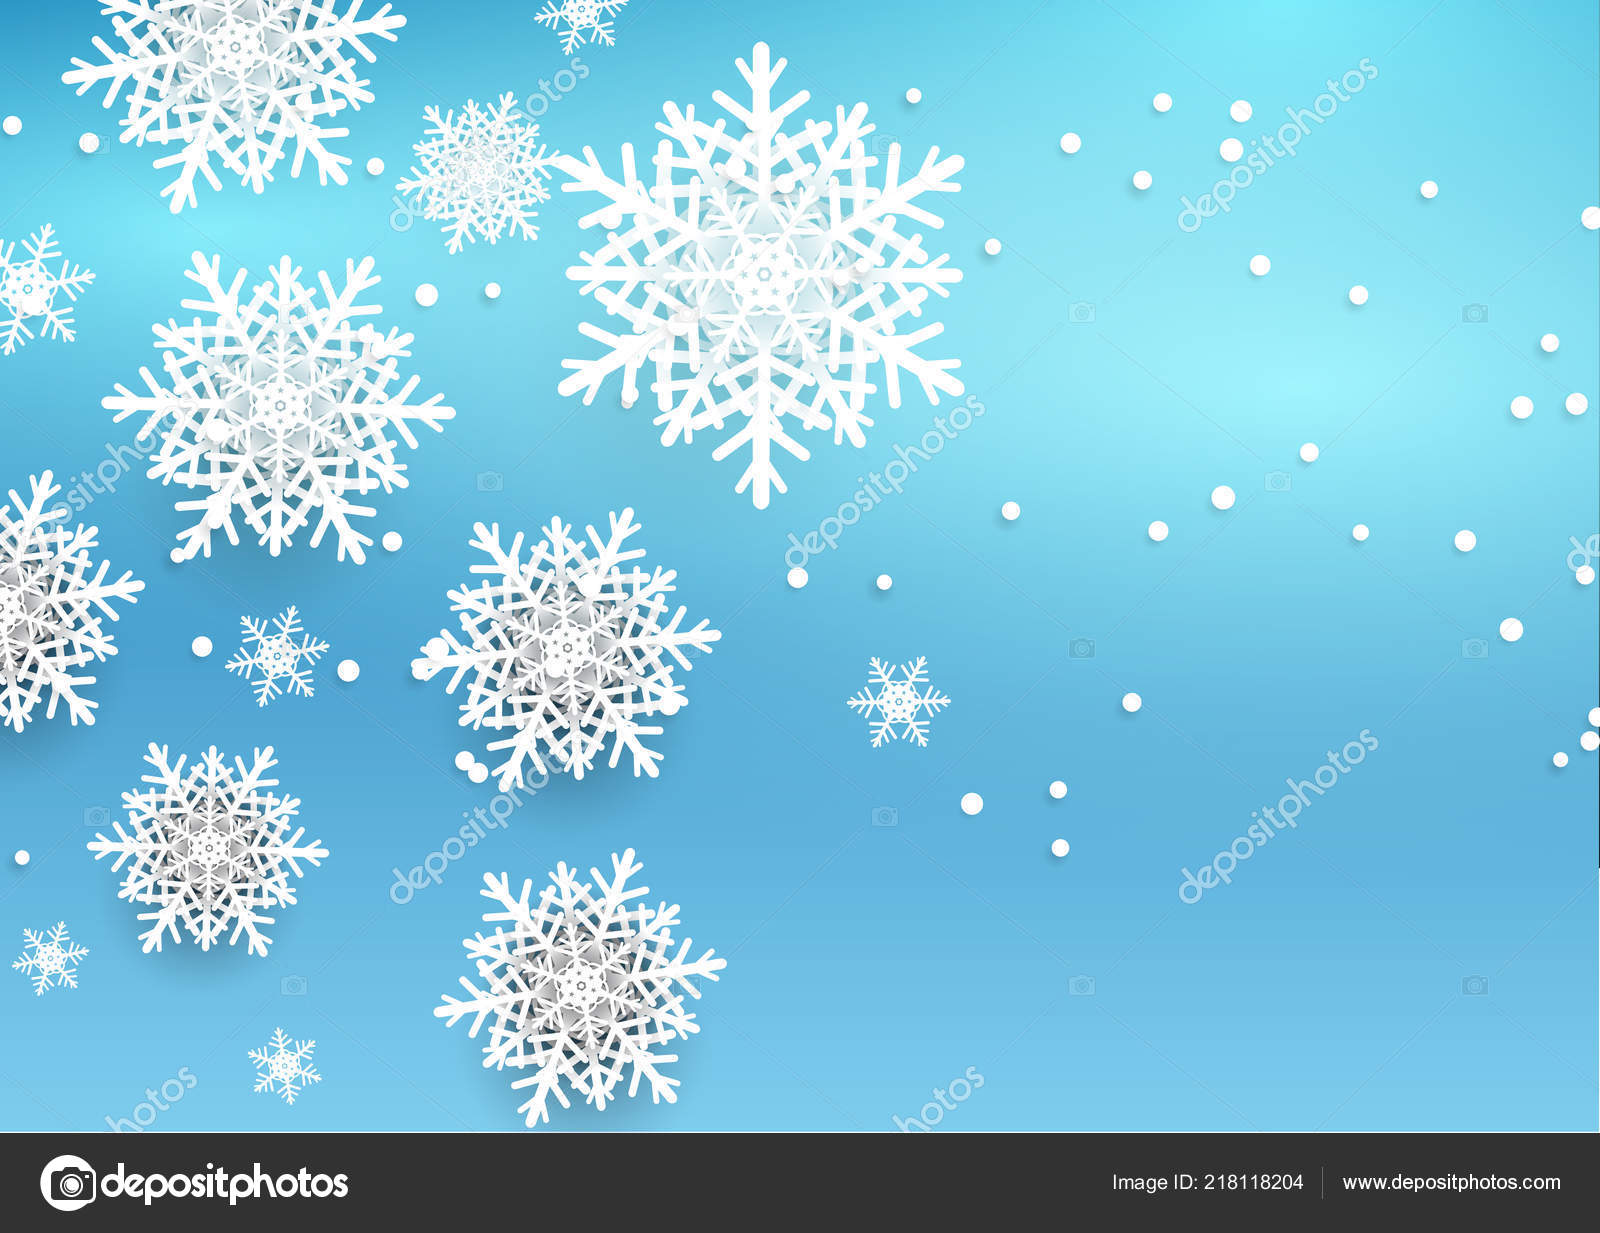 Christmas Background Design.Christmas Background Design Style Snowflakes Stock Vector